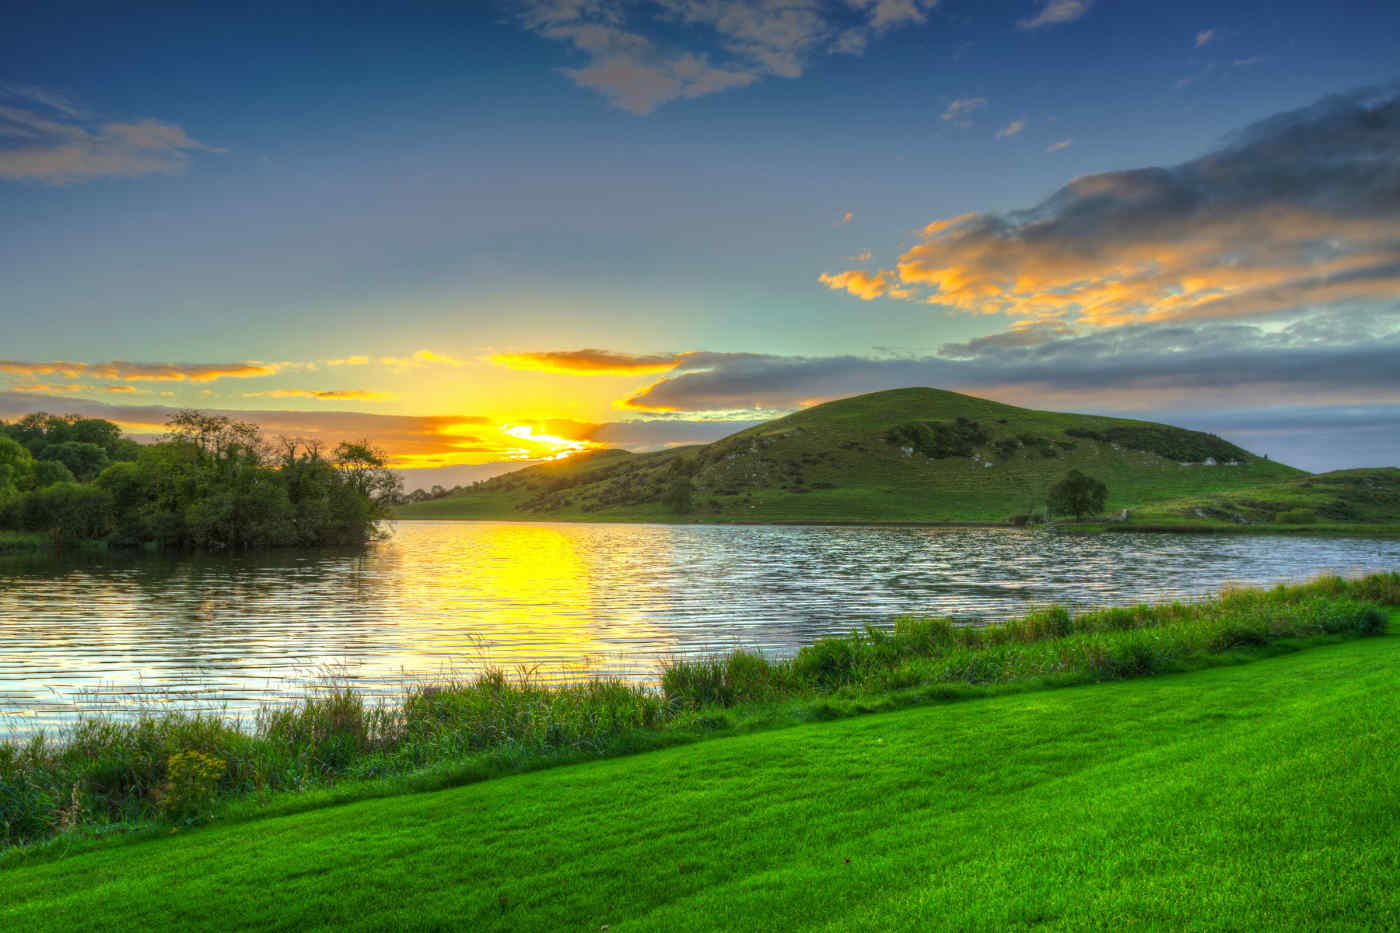 Lough Gur in County Limerick